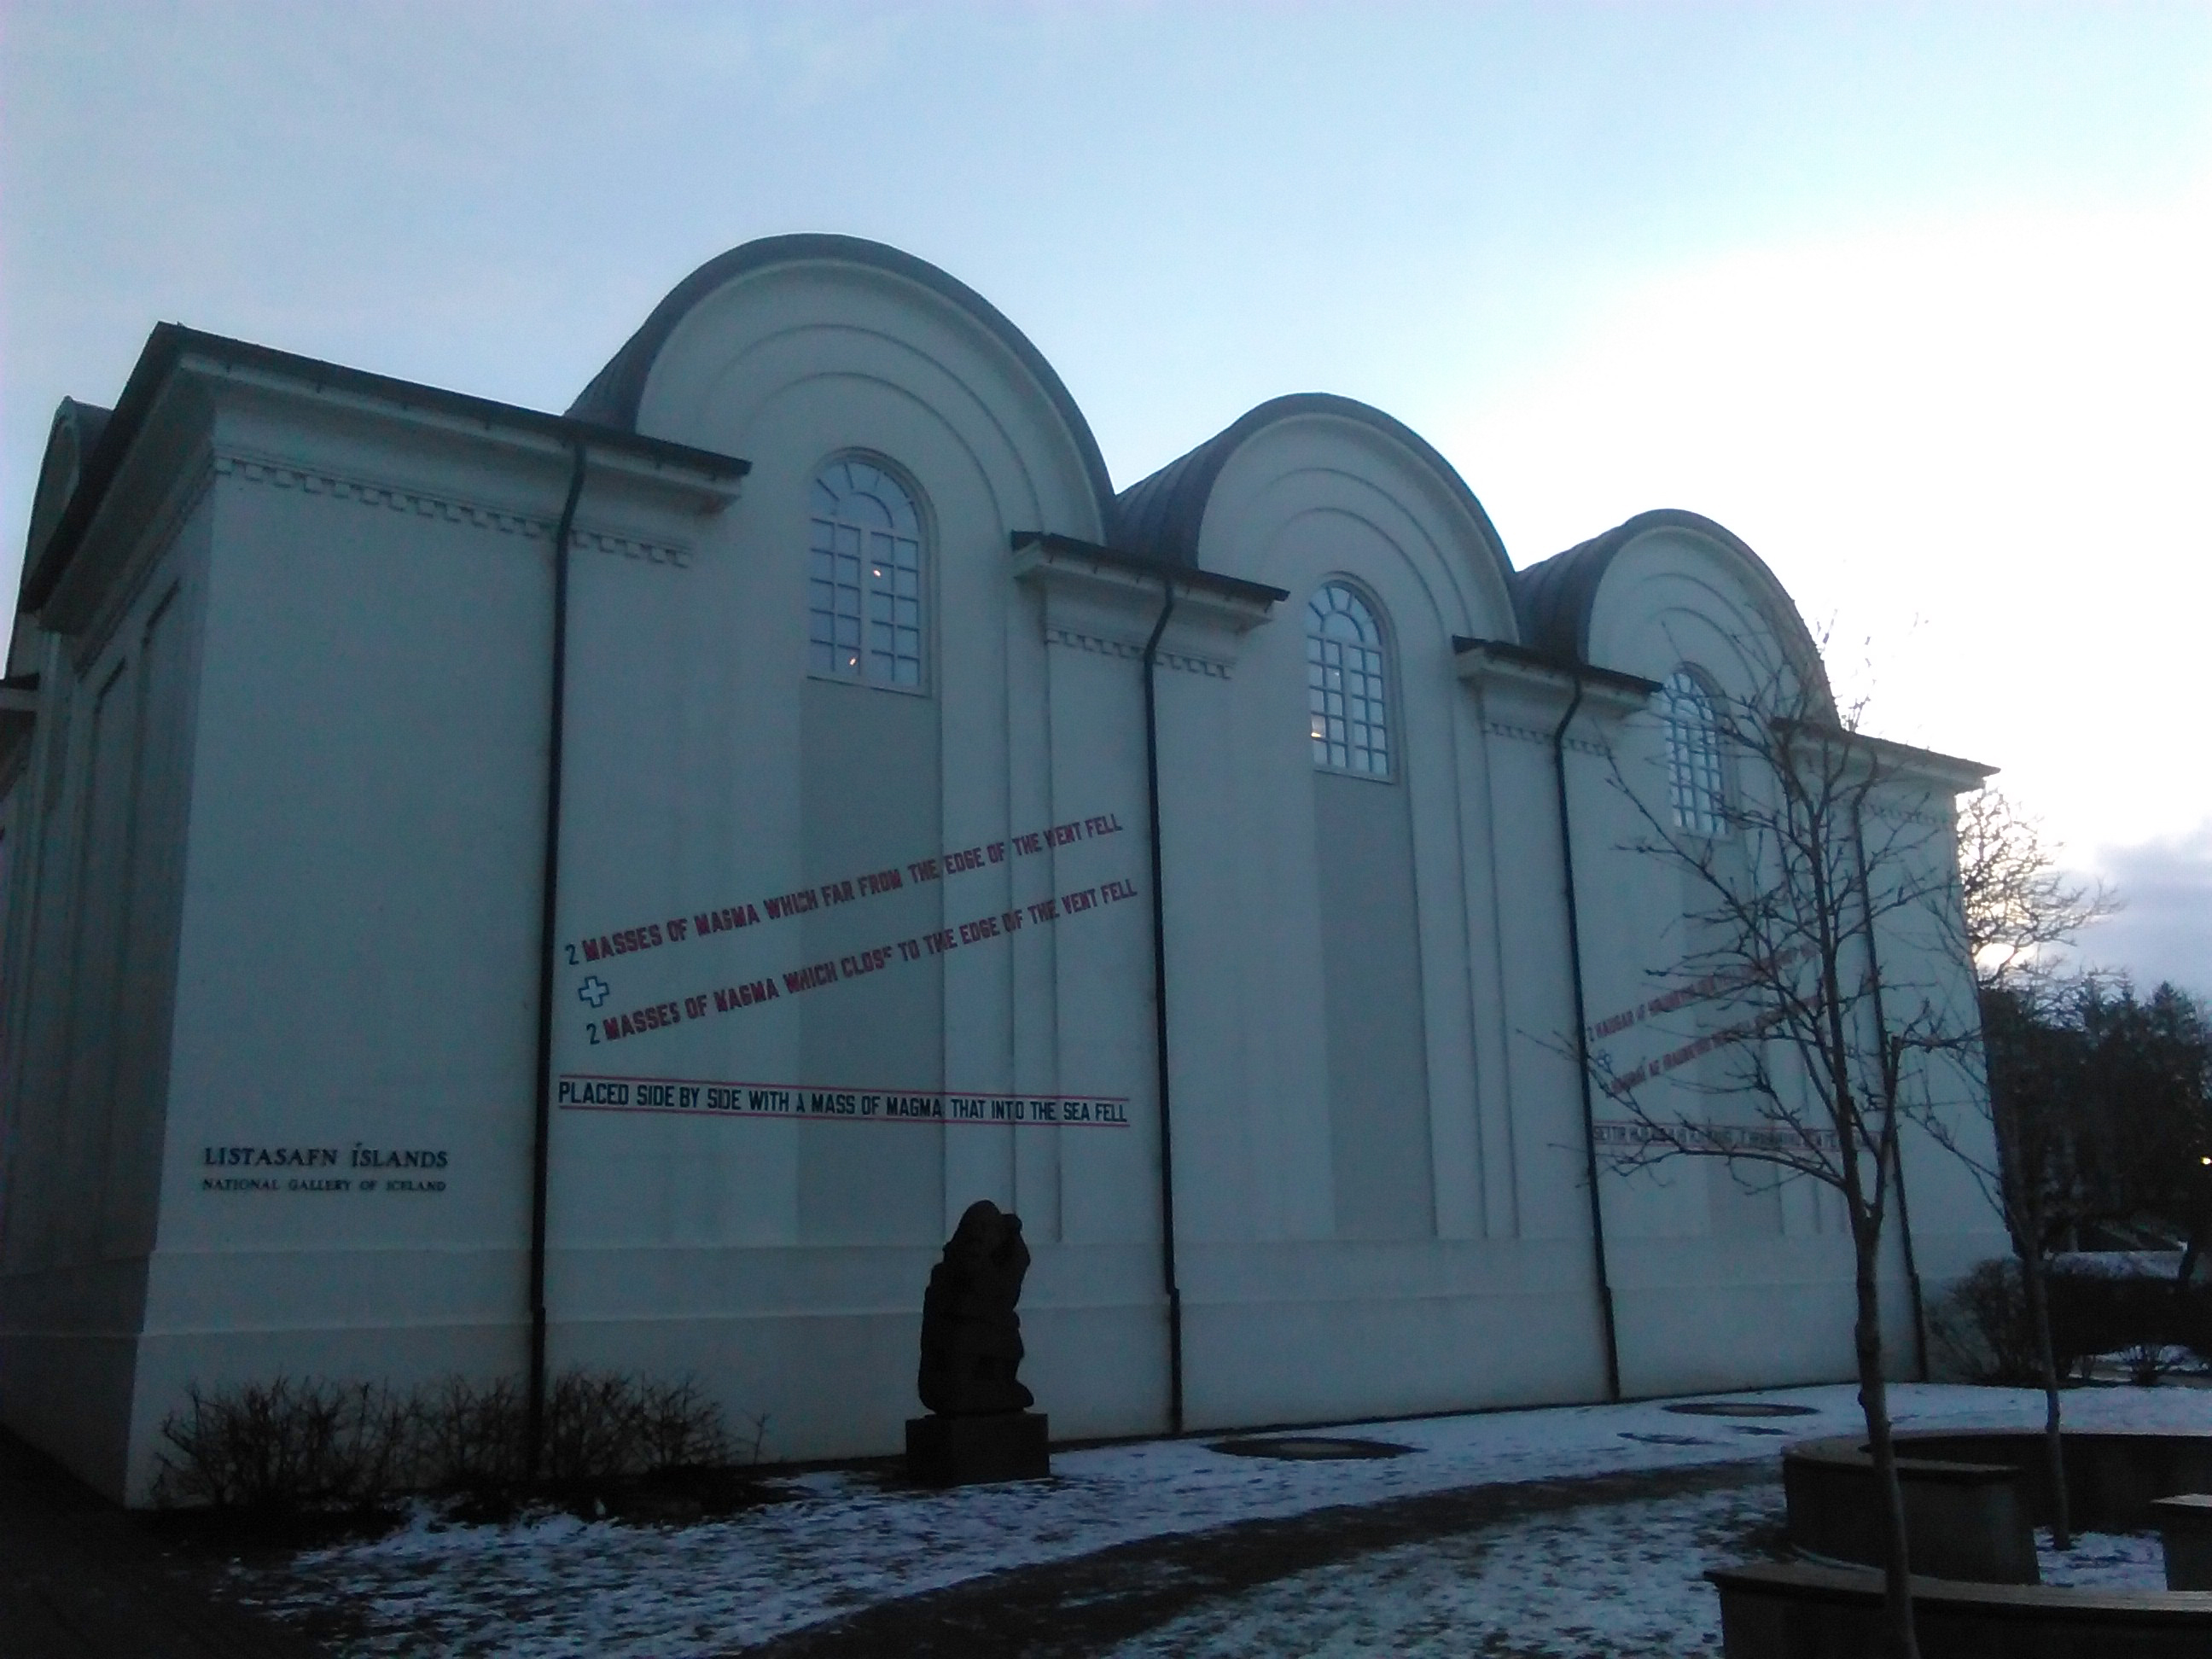 Much like Hafnarhús, The National Gallery of Iceland is located in an  amazing historic building. Constructed in 1916 as an icehouse the building  itself went ...